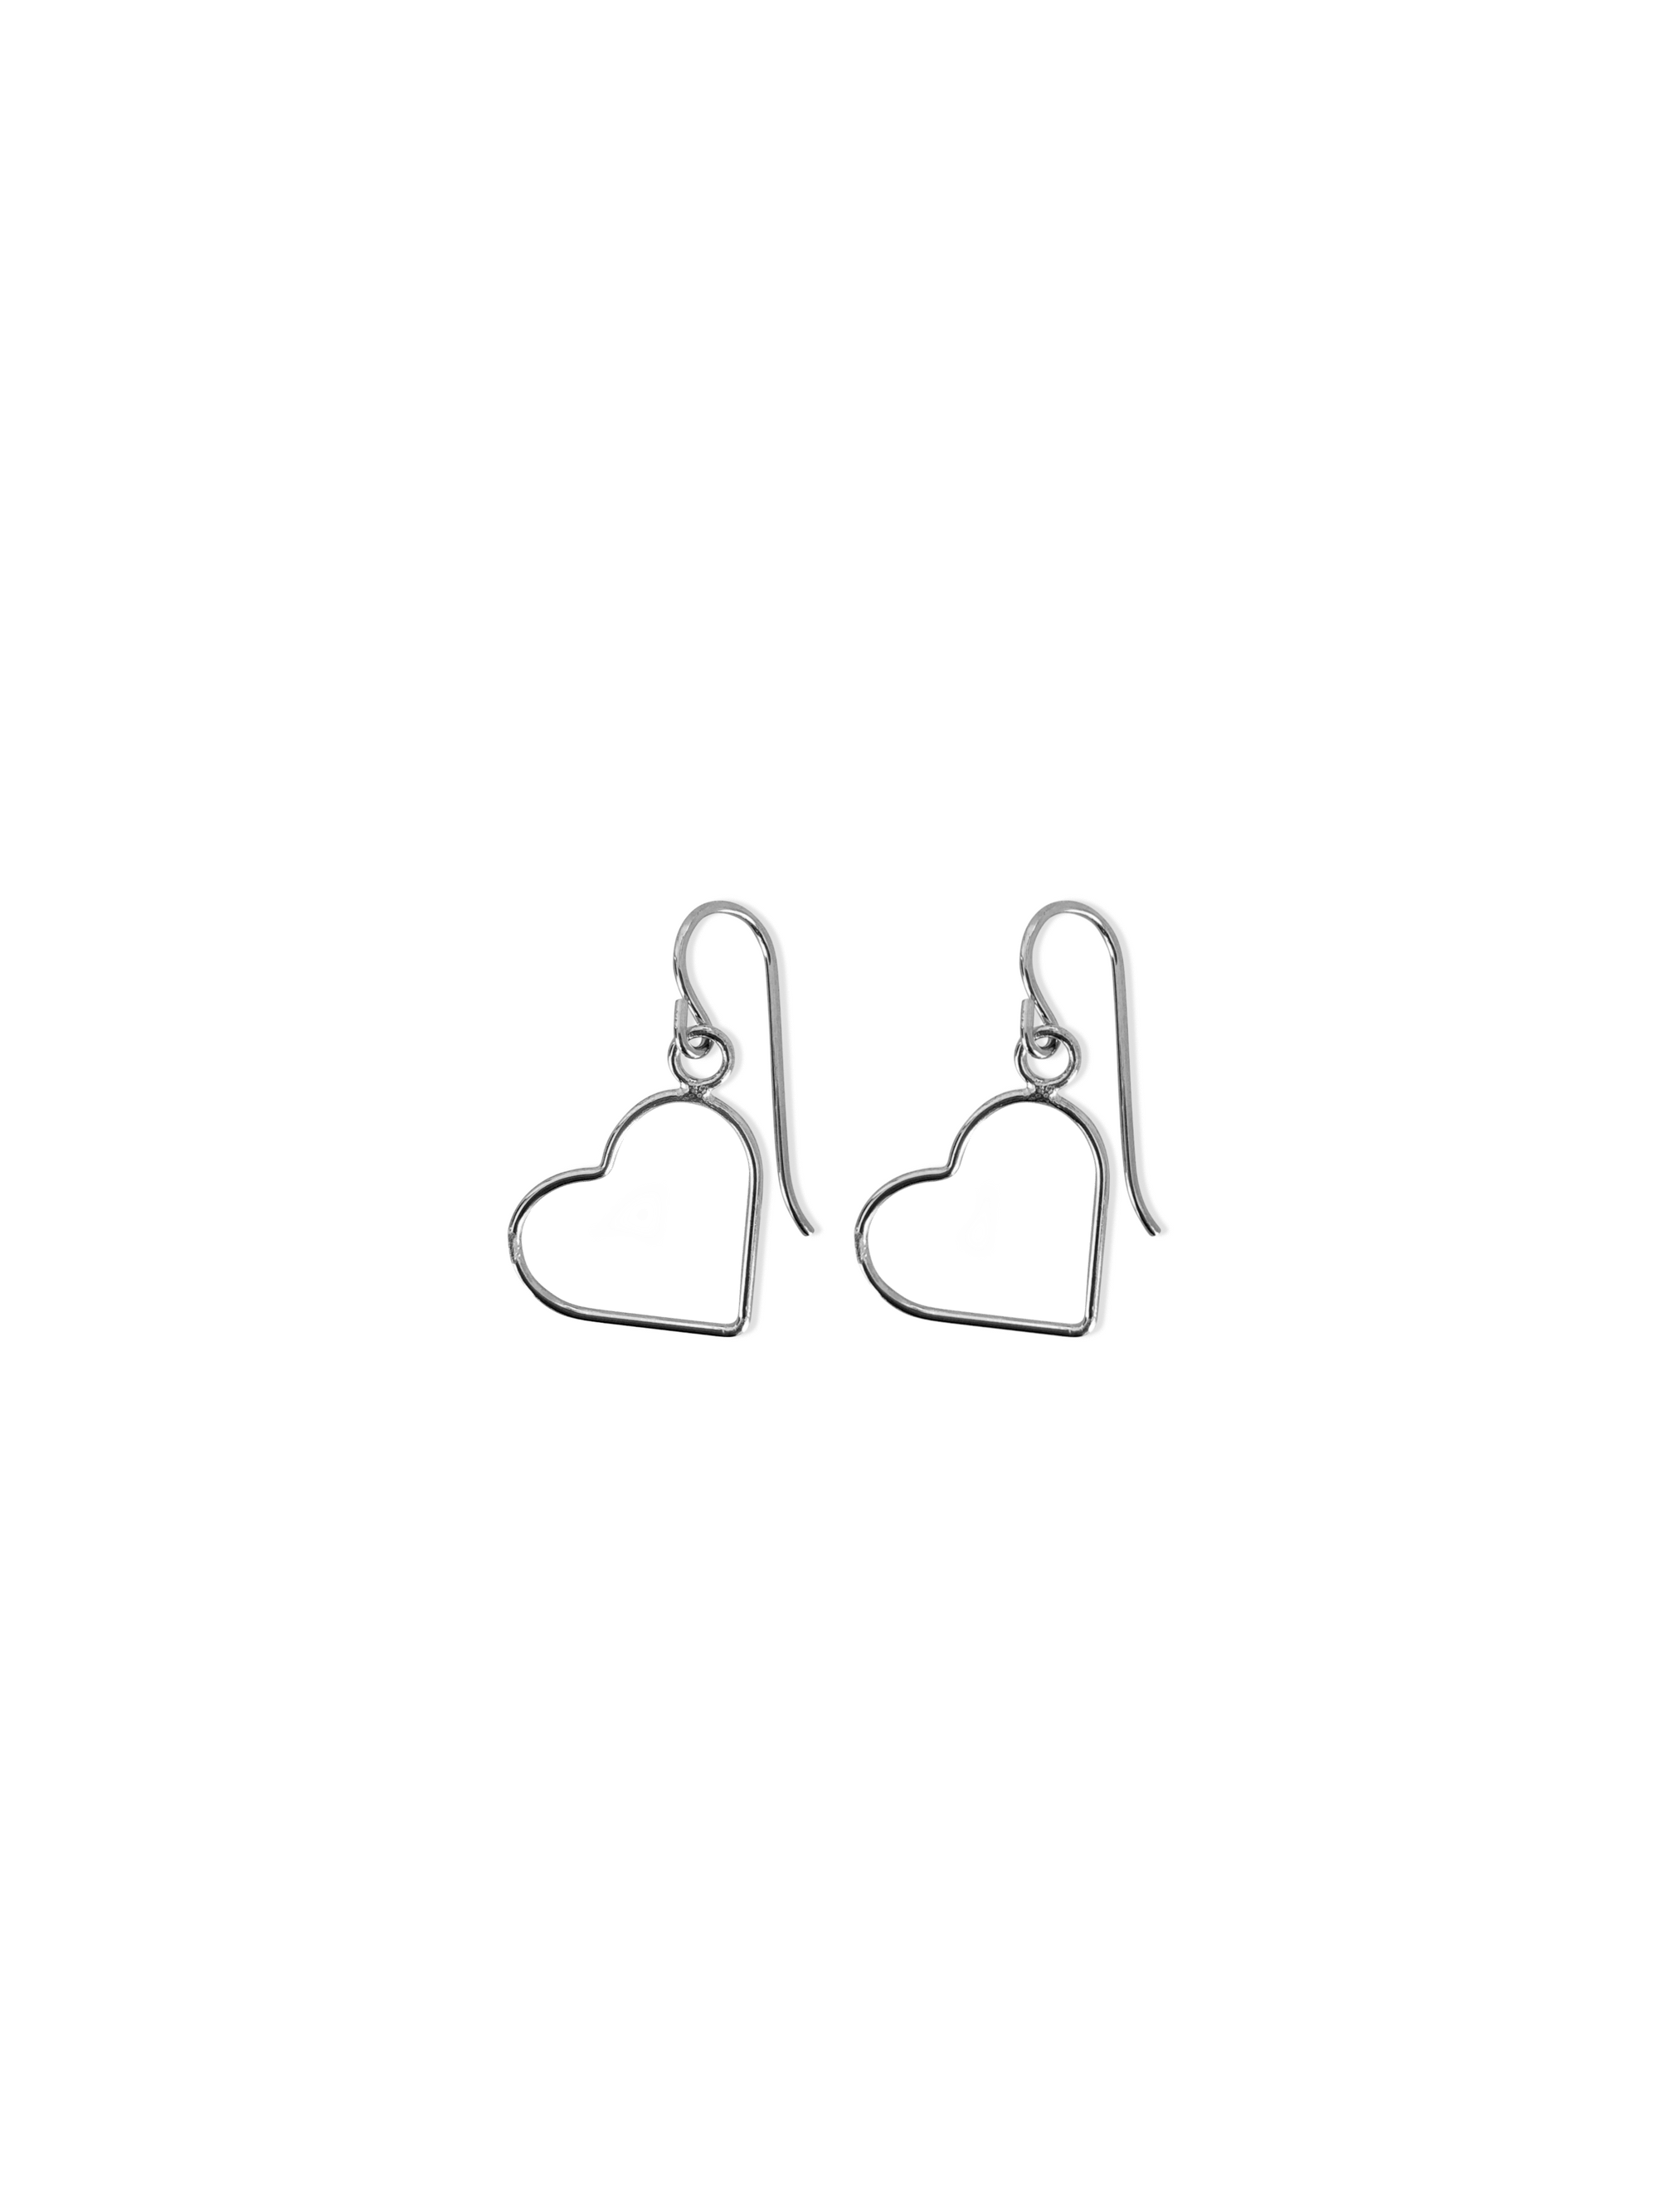 Custom Heart Earrings for Fotographers